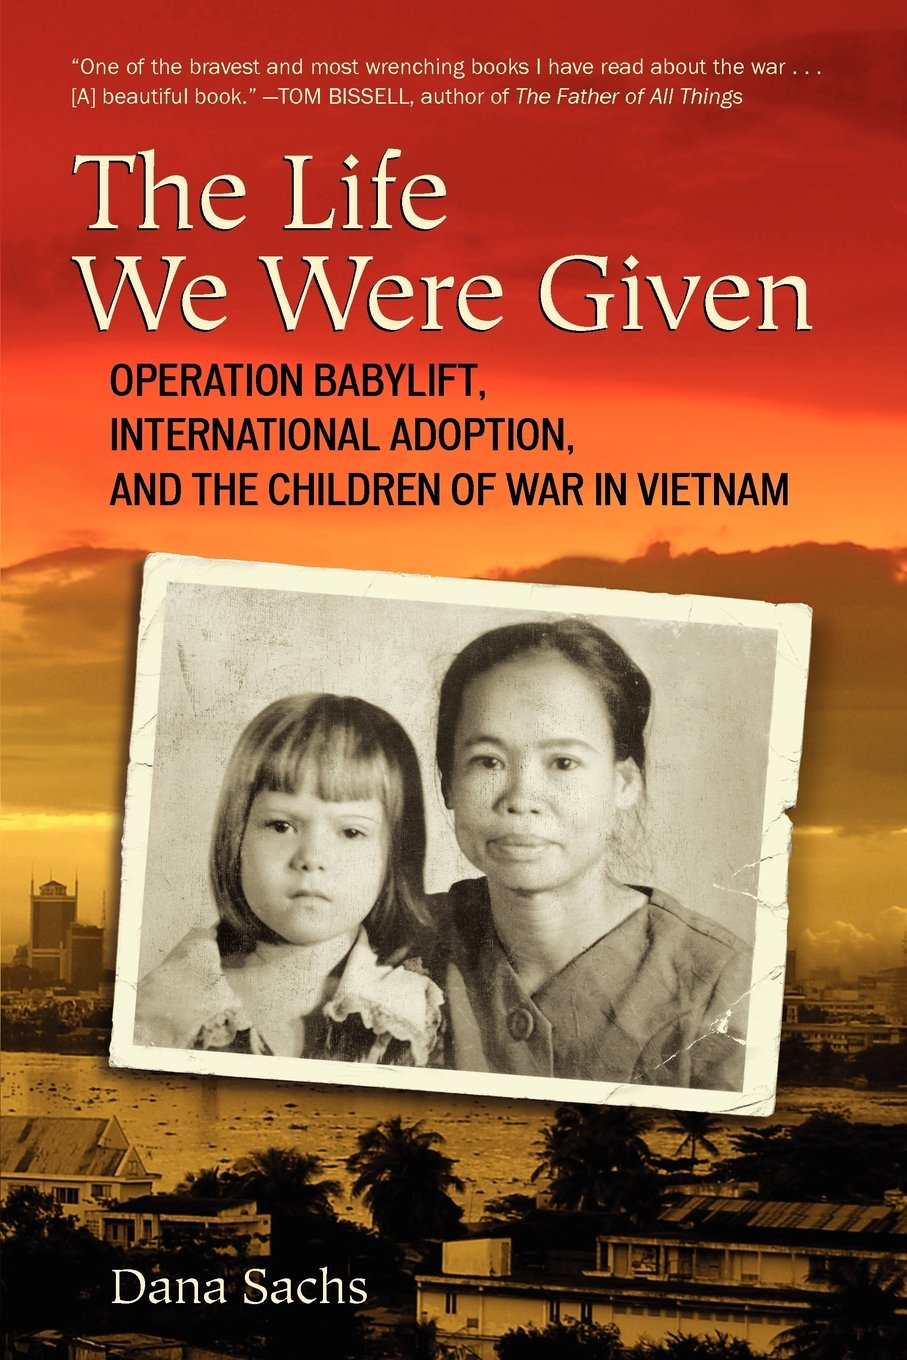 Dana Sachs, The Life We Were Given: Operation Babylift, International Adoption, and the Children of War in Vietnam